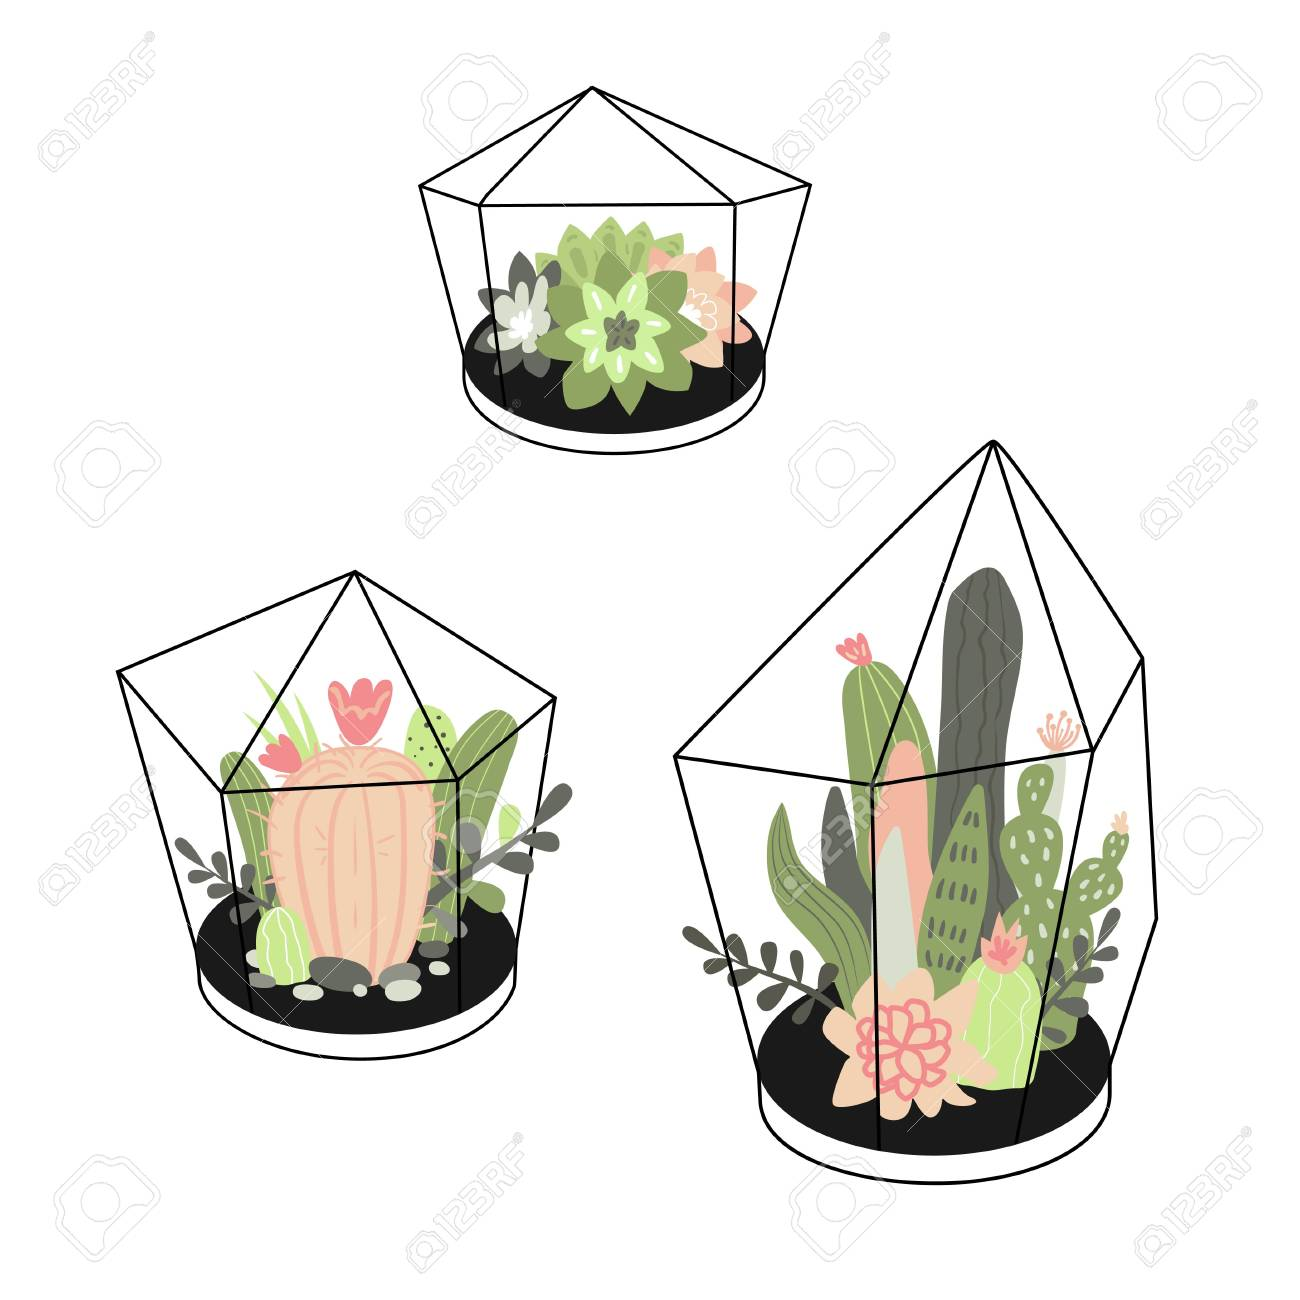 Vector Set With Cute Cactuses And Succulents In Terrariums Illustration Royalty Free Cliparts Vectors And Stock Illustration Image 92935433